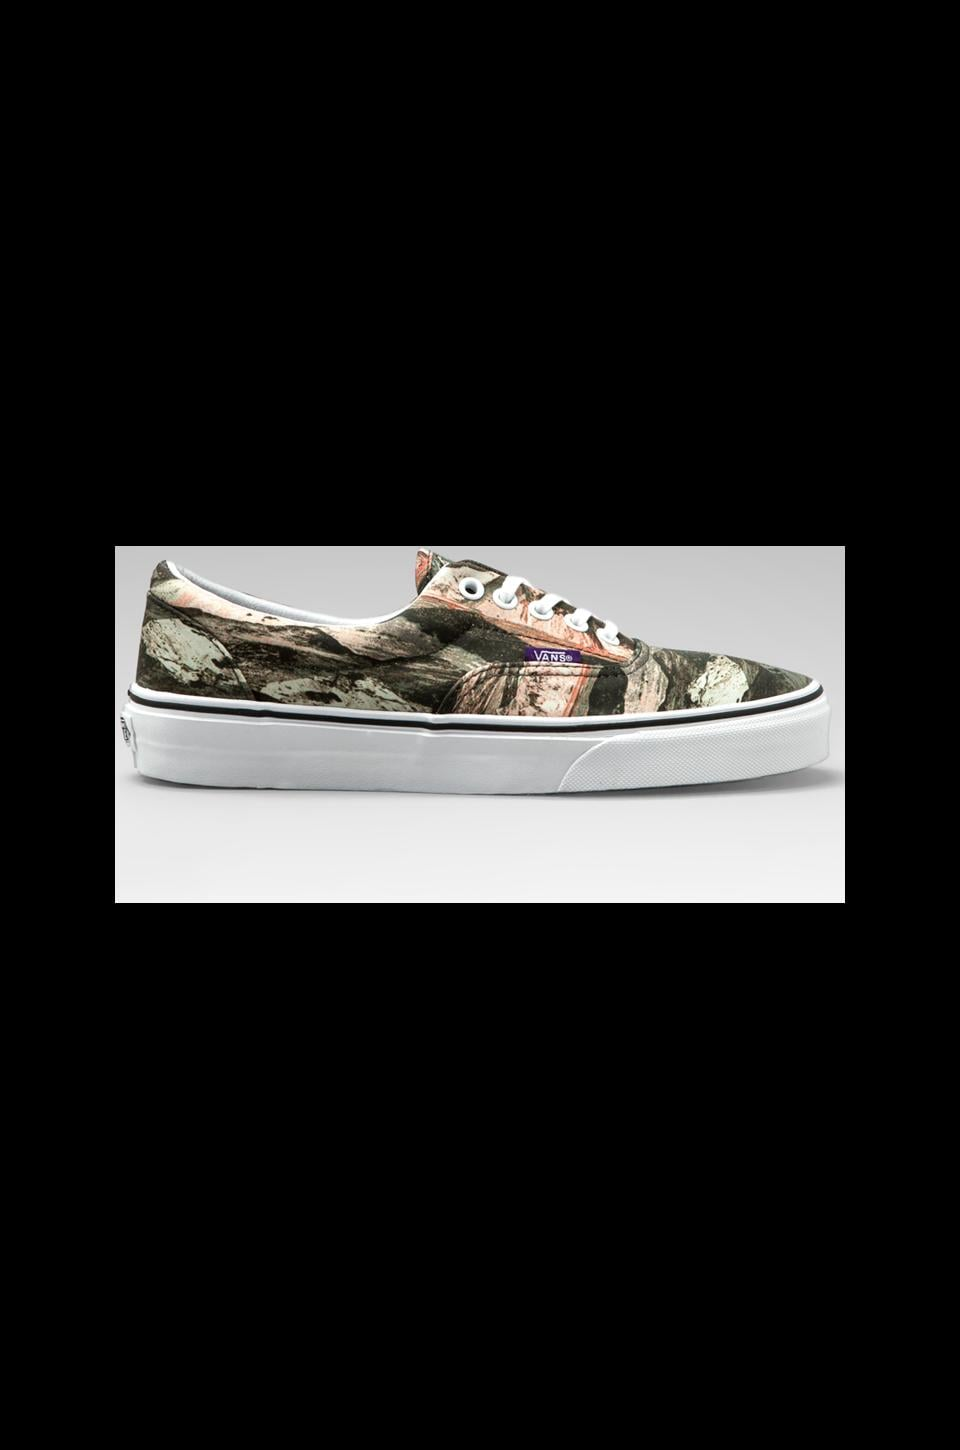 Vans Era Liberty in Mountains/Army